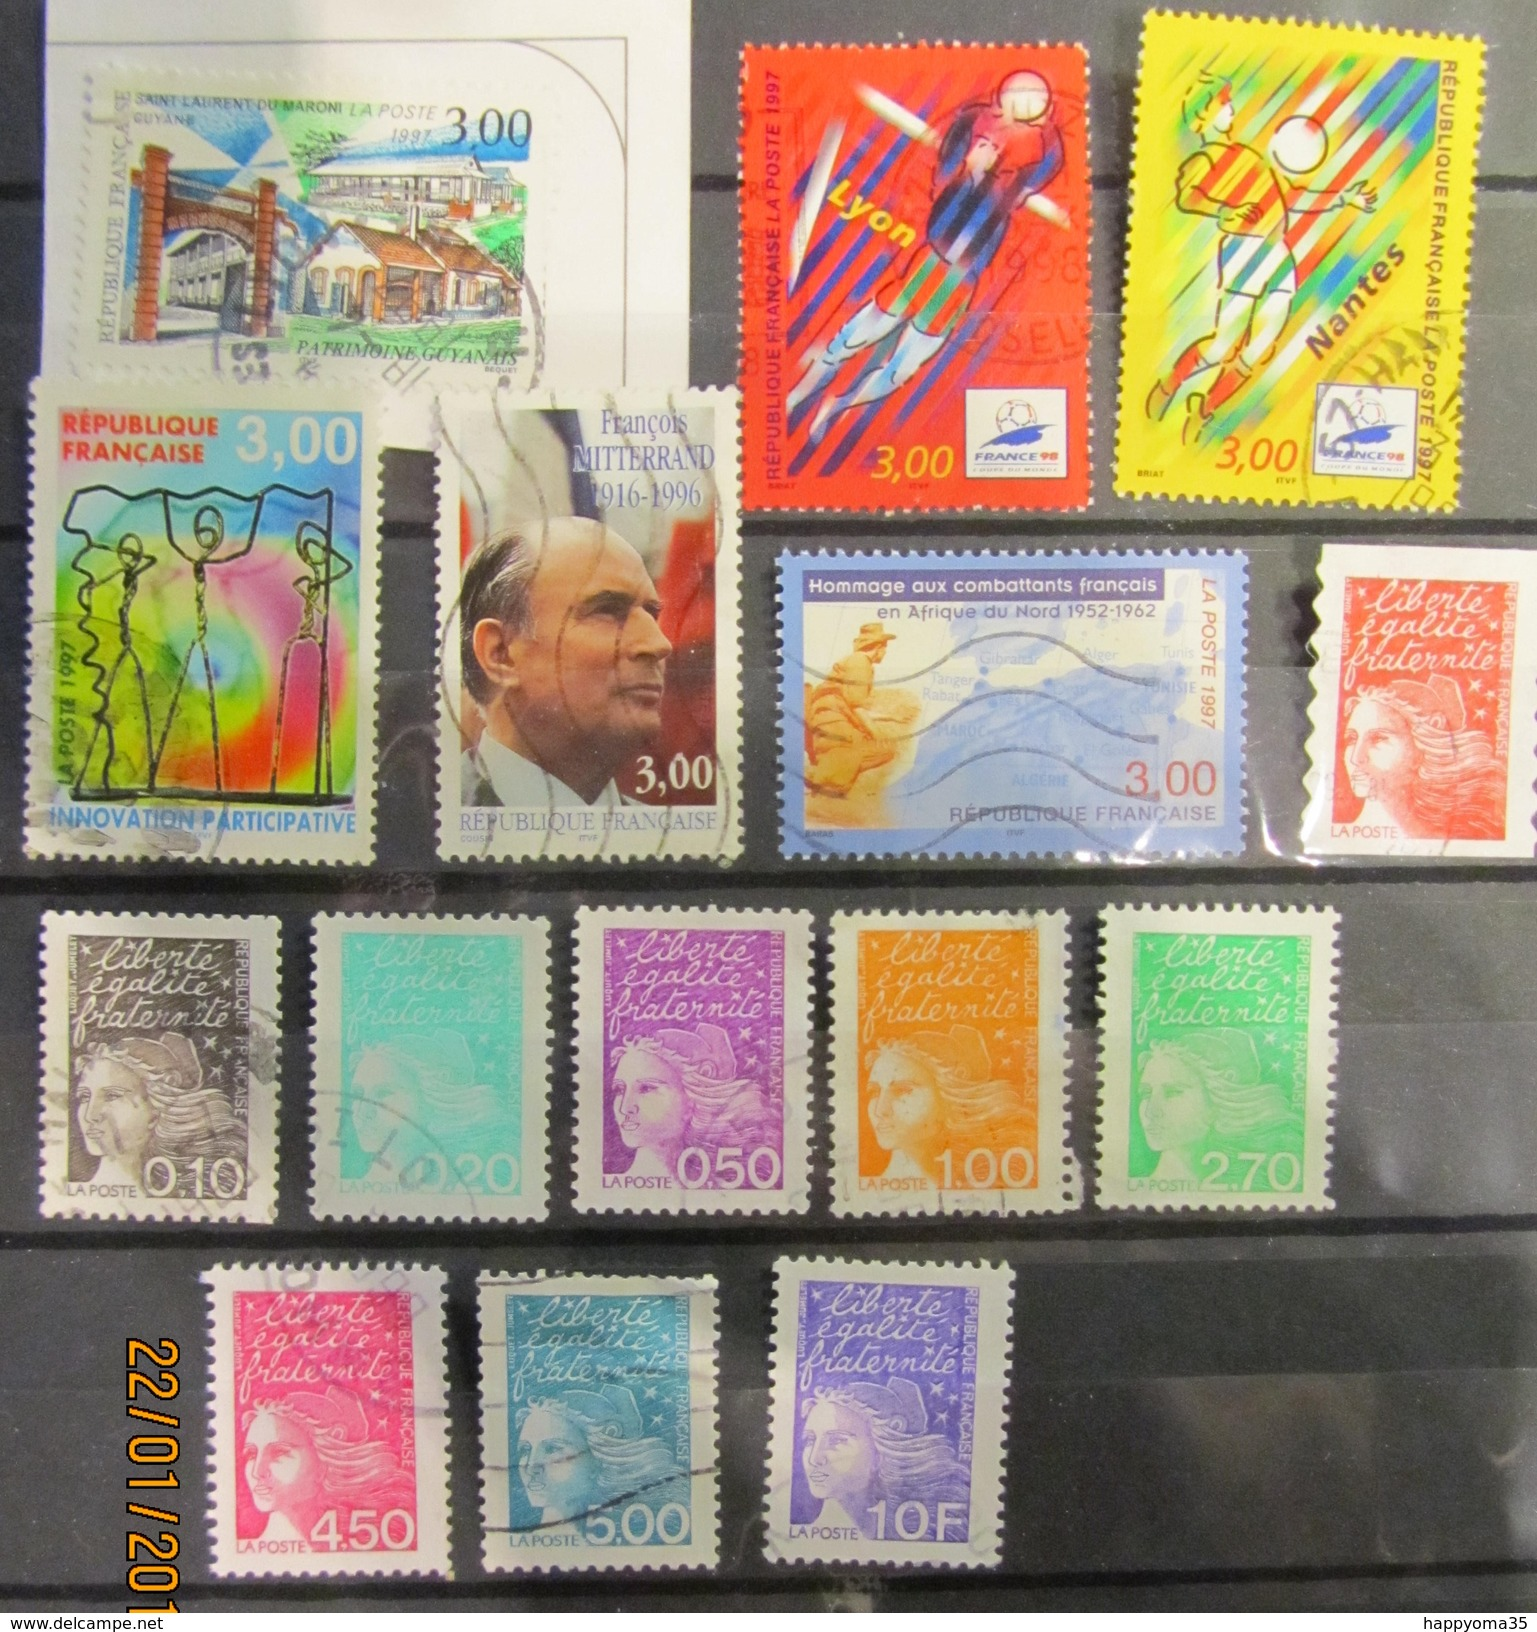 Frankreich Mix Set Stamps Of 1997 France Francia Frankrijk Small Selection Of Fine Used 381 - Frankreich